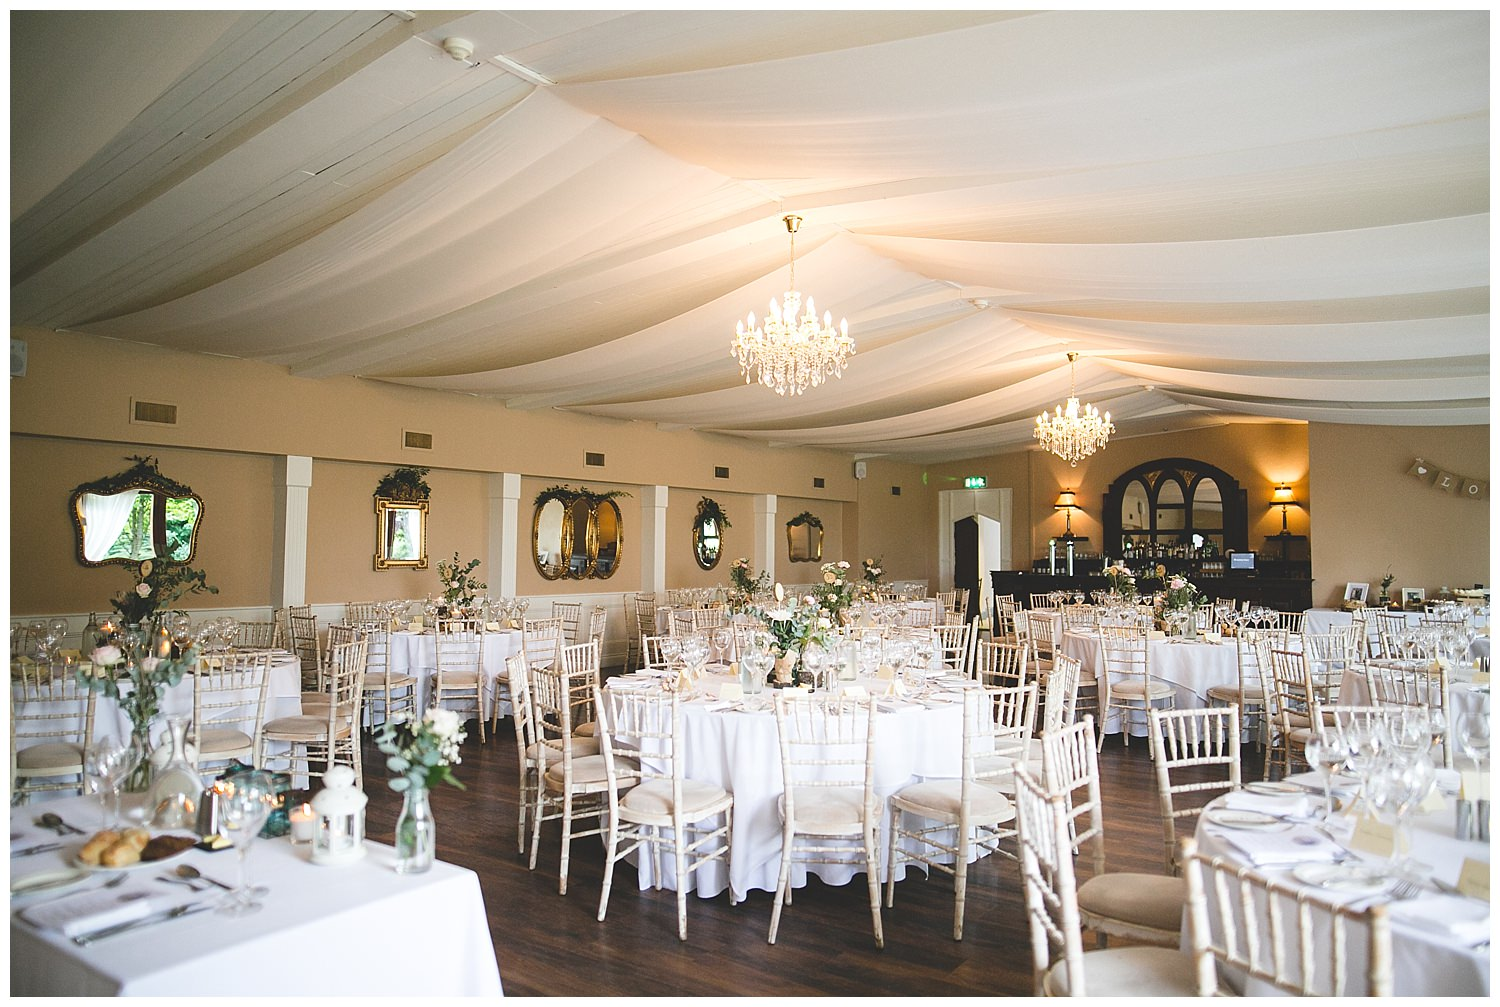 Wedding set-up in the Dining Room at Bellinter House